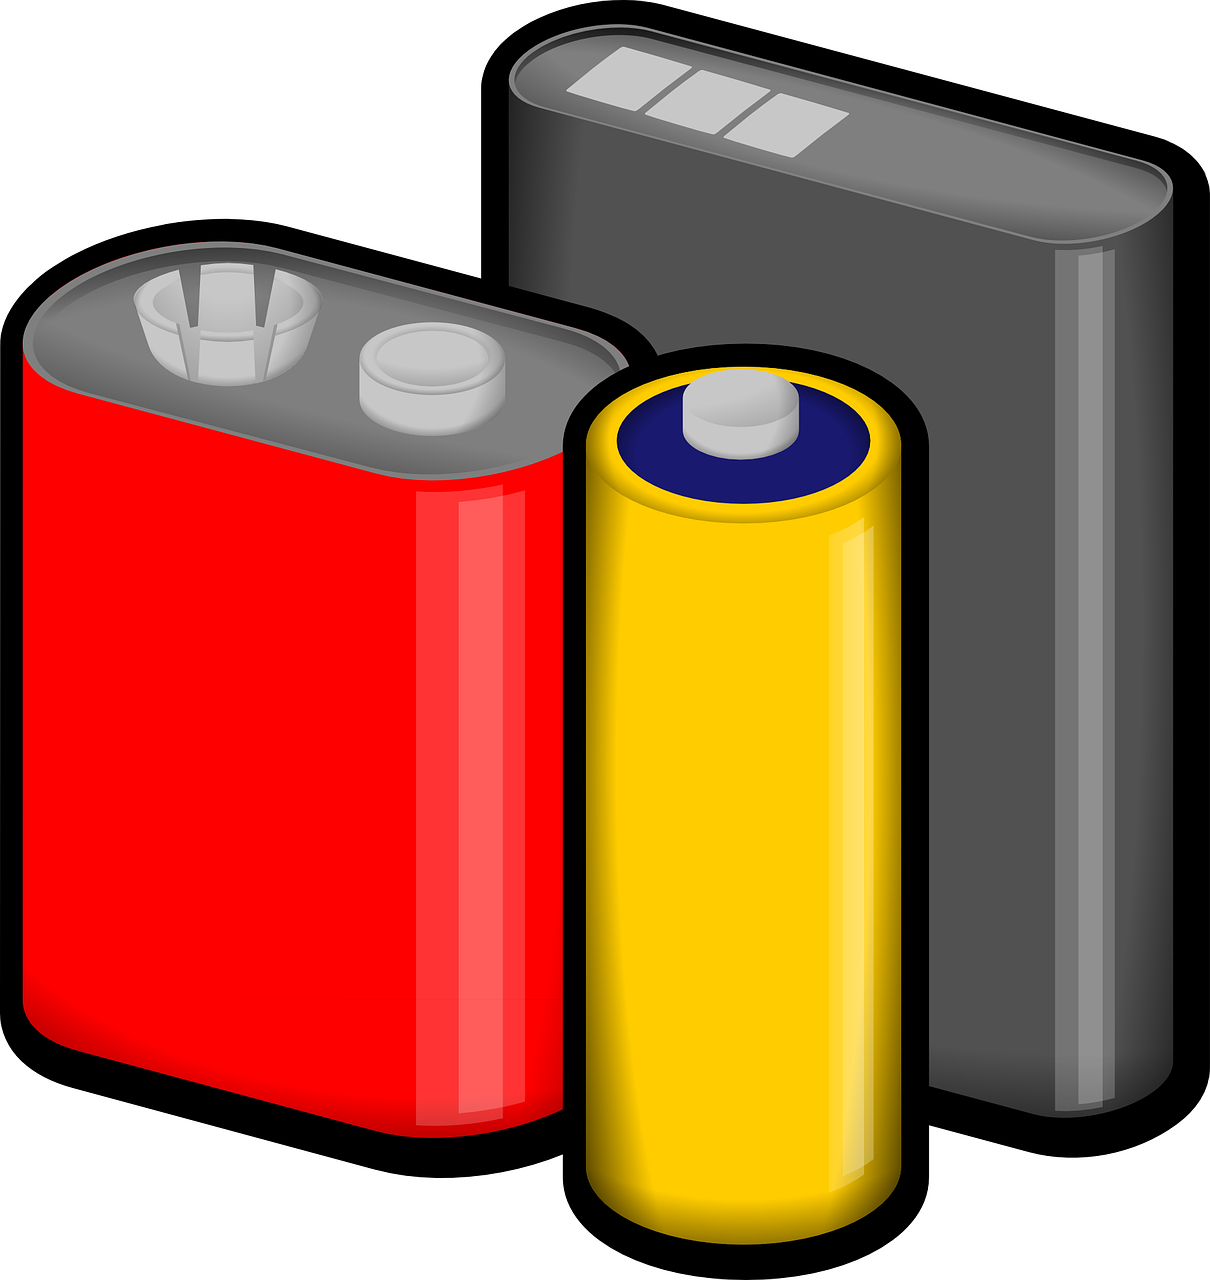 batteries red yellow free photo